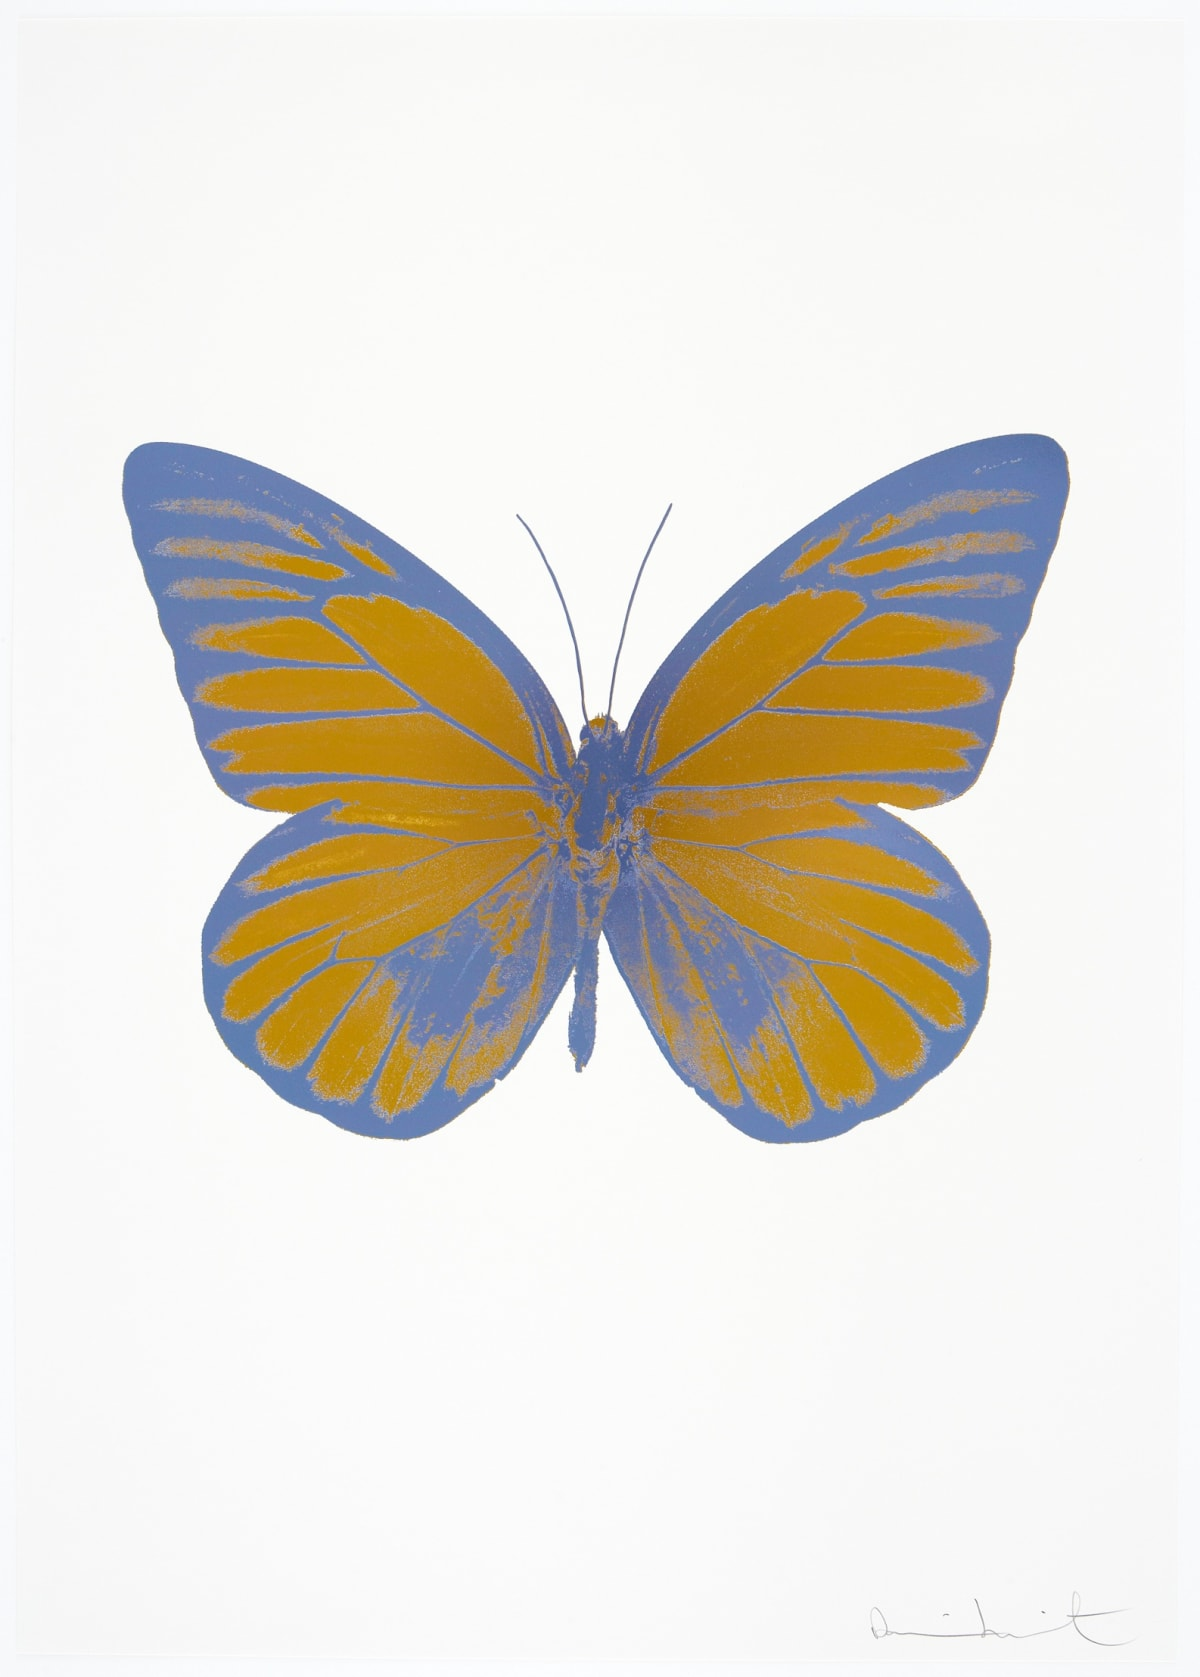 Damien Hirst The Souls I - Paradise Copper/Cornflower Blue/Cornflower Blue, 2010 2 colour foil block on 300gsm Arches 88 archival paper. Signed and numbered. Published by Paul Stolper and Other Criteria 72 x 51cm OC7751 / 659-14 Edition of 15